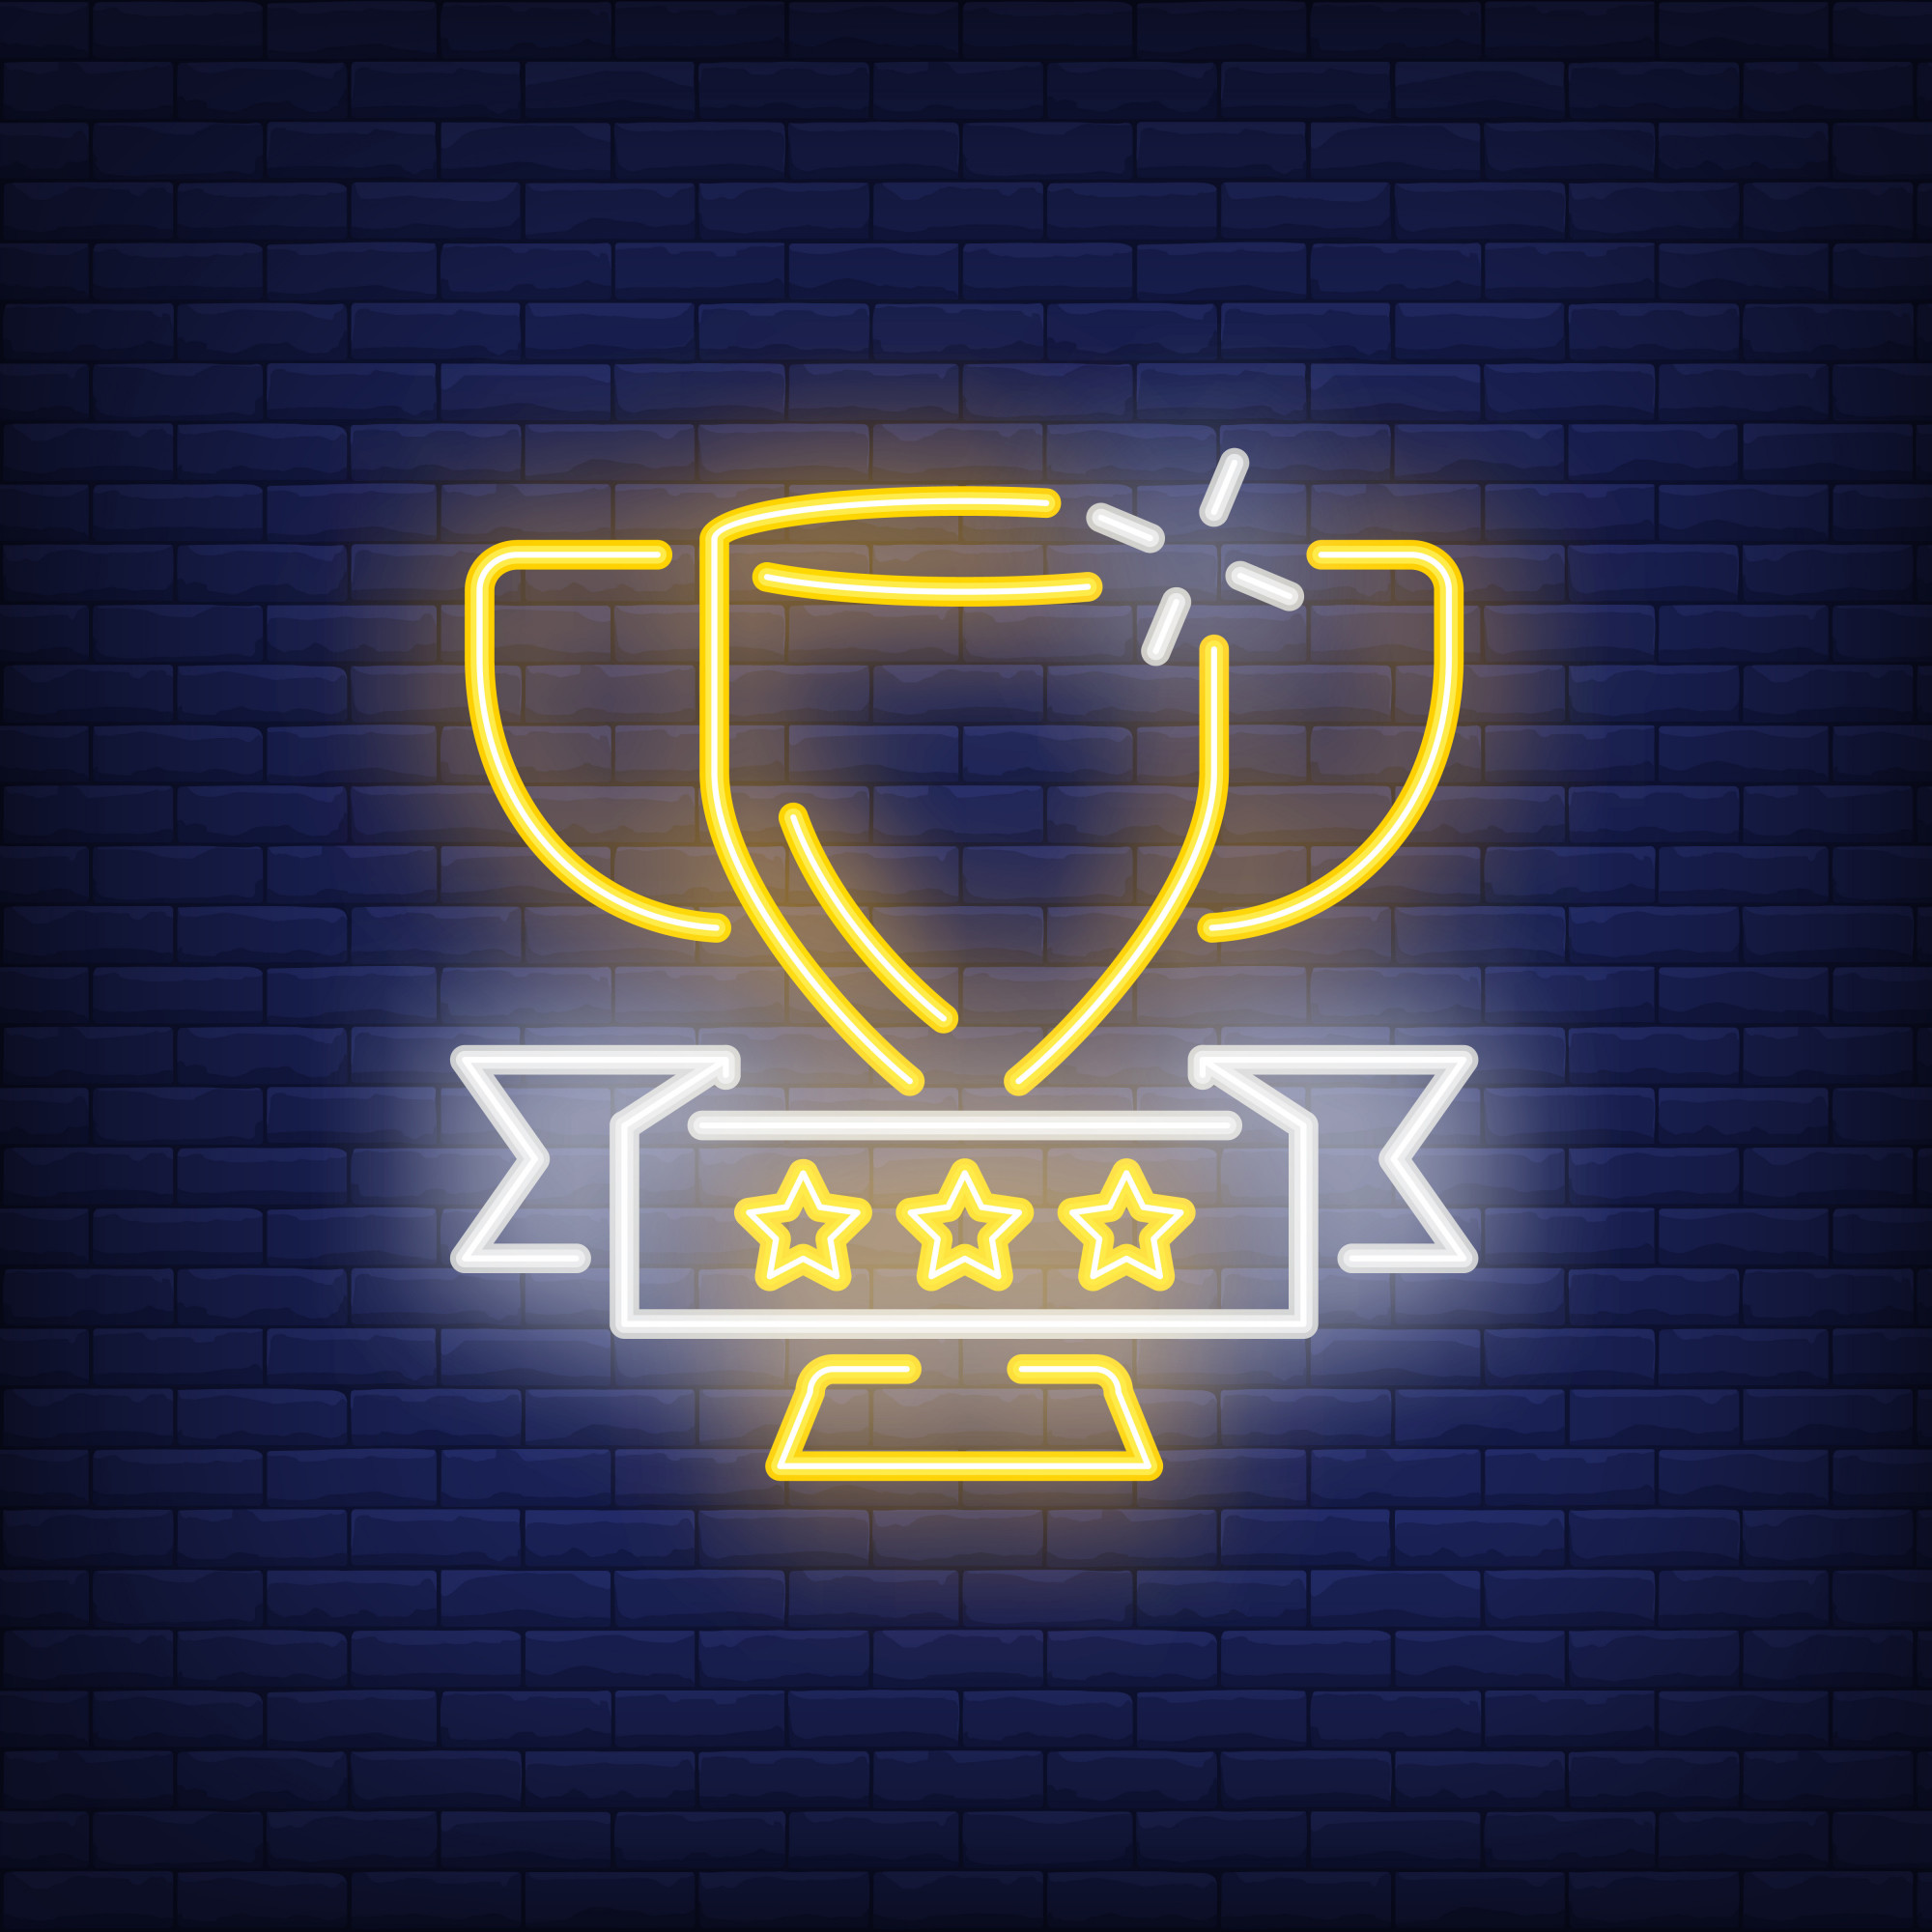 Golden cup on brick background. Neon style illustration. Victory, trophy, winner.